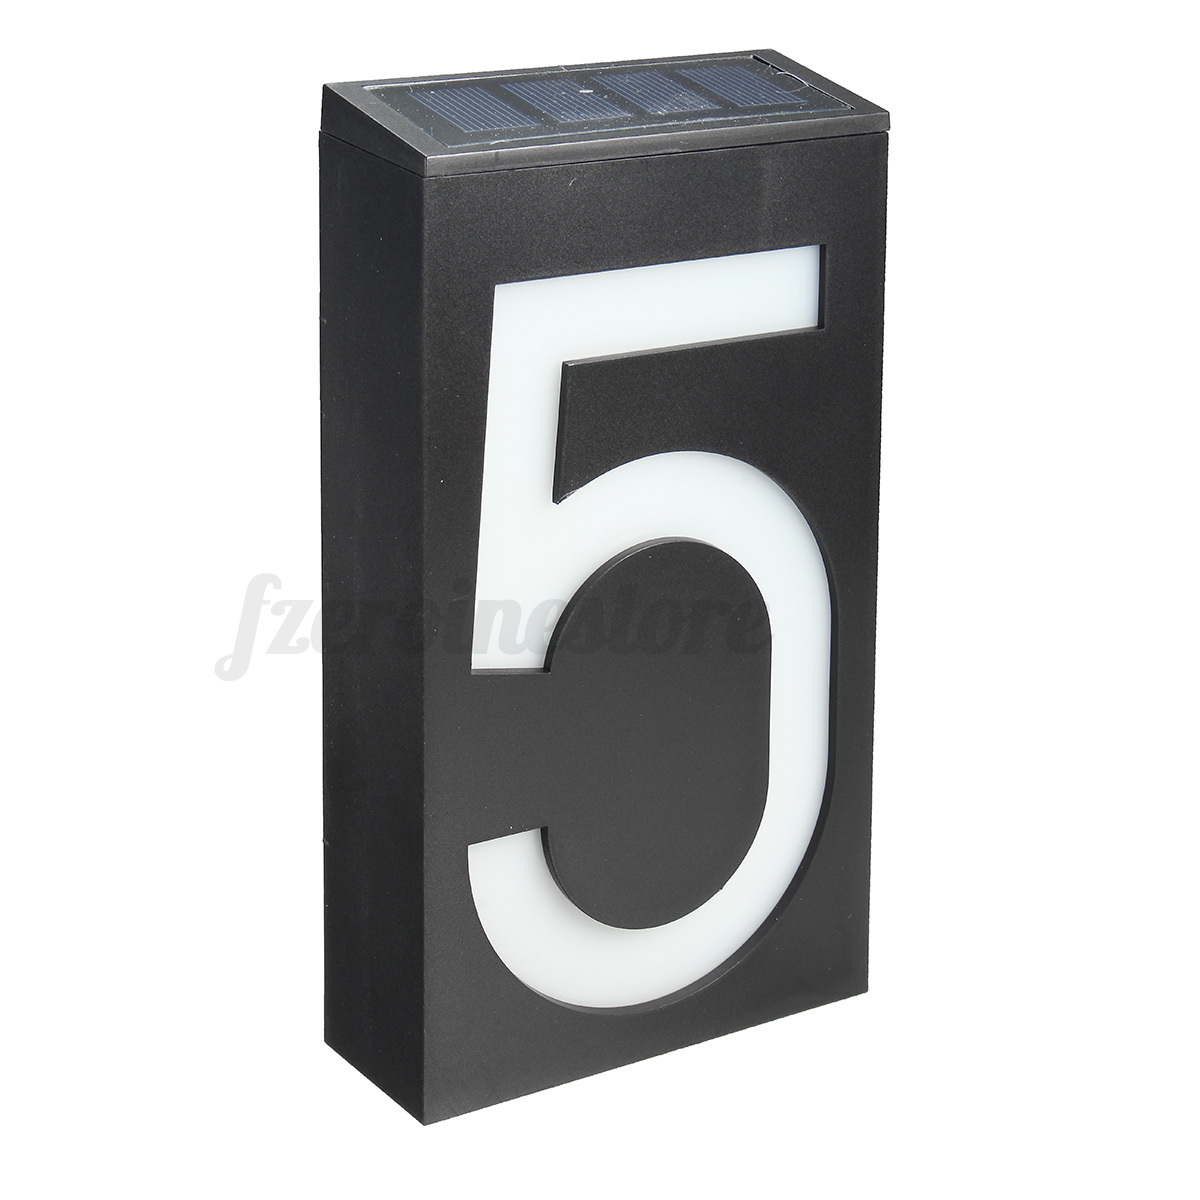 solar power 6 led light door number sign house hotel. Black Bedroom Furniture Sets. Home Design Ideas